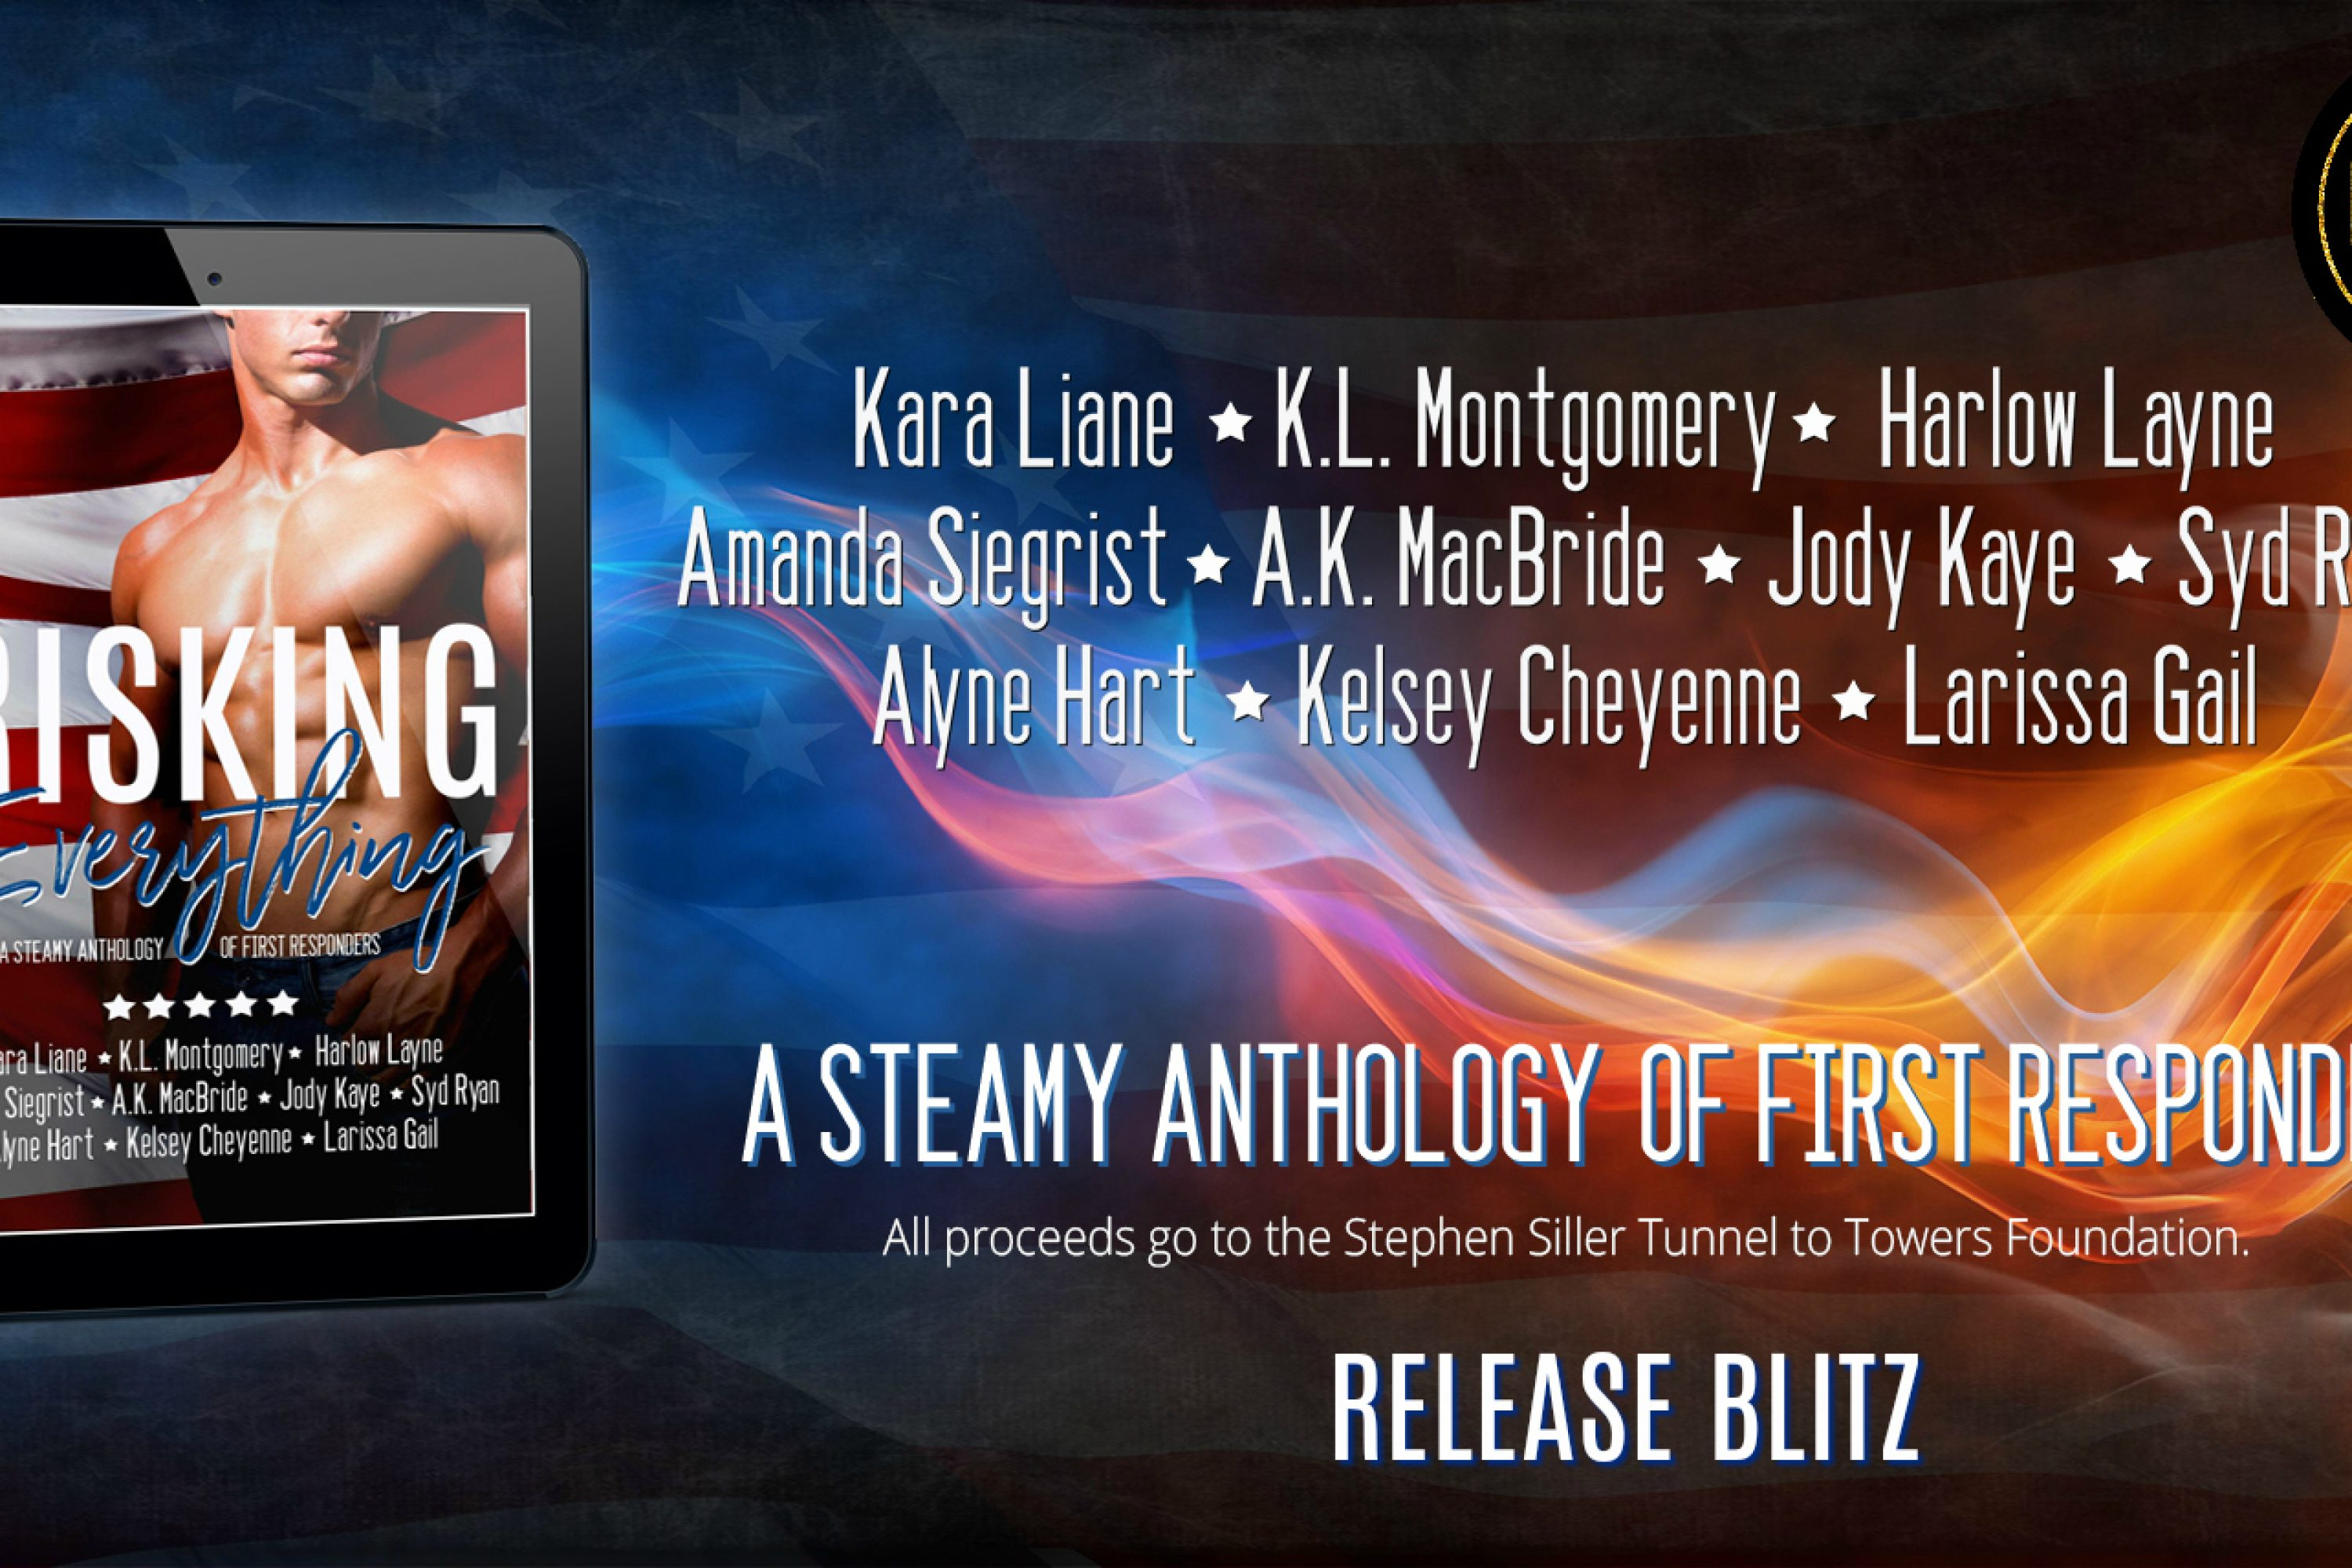 Release Blitz: Risking Everything: A Steamy Anthology of First Responders